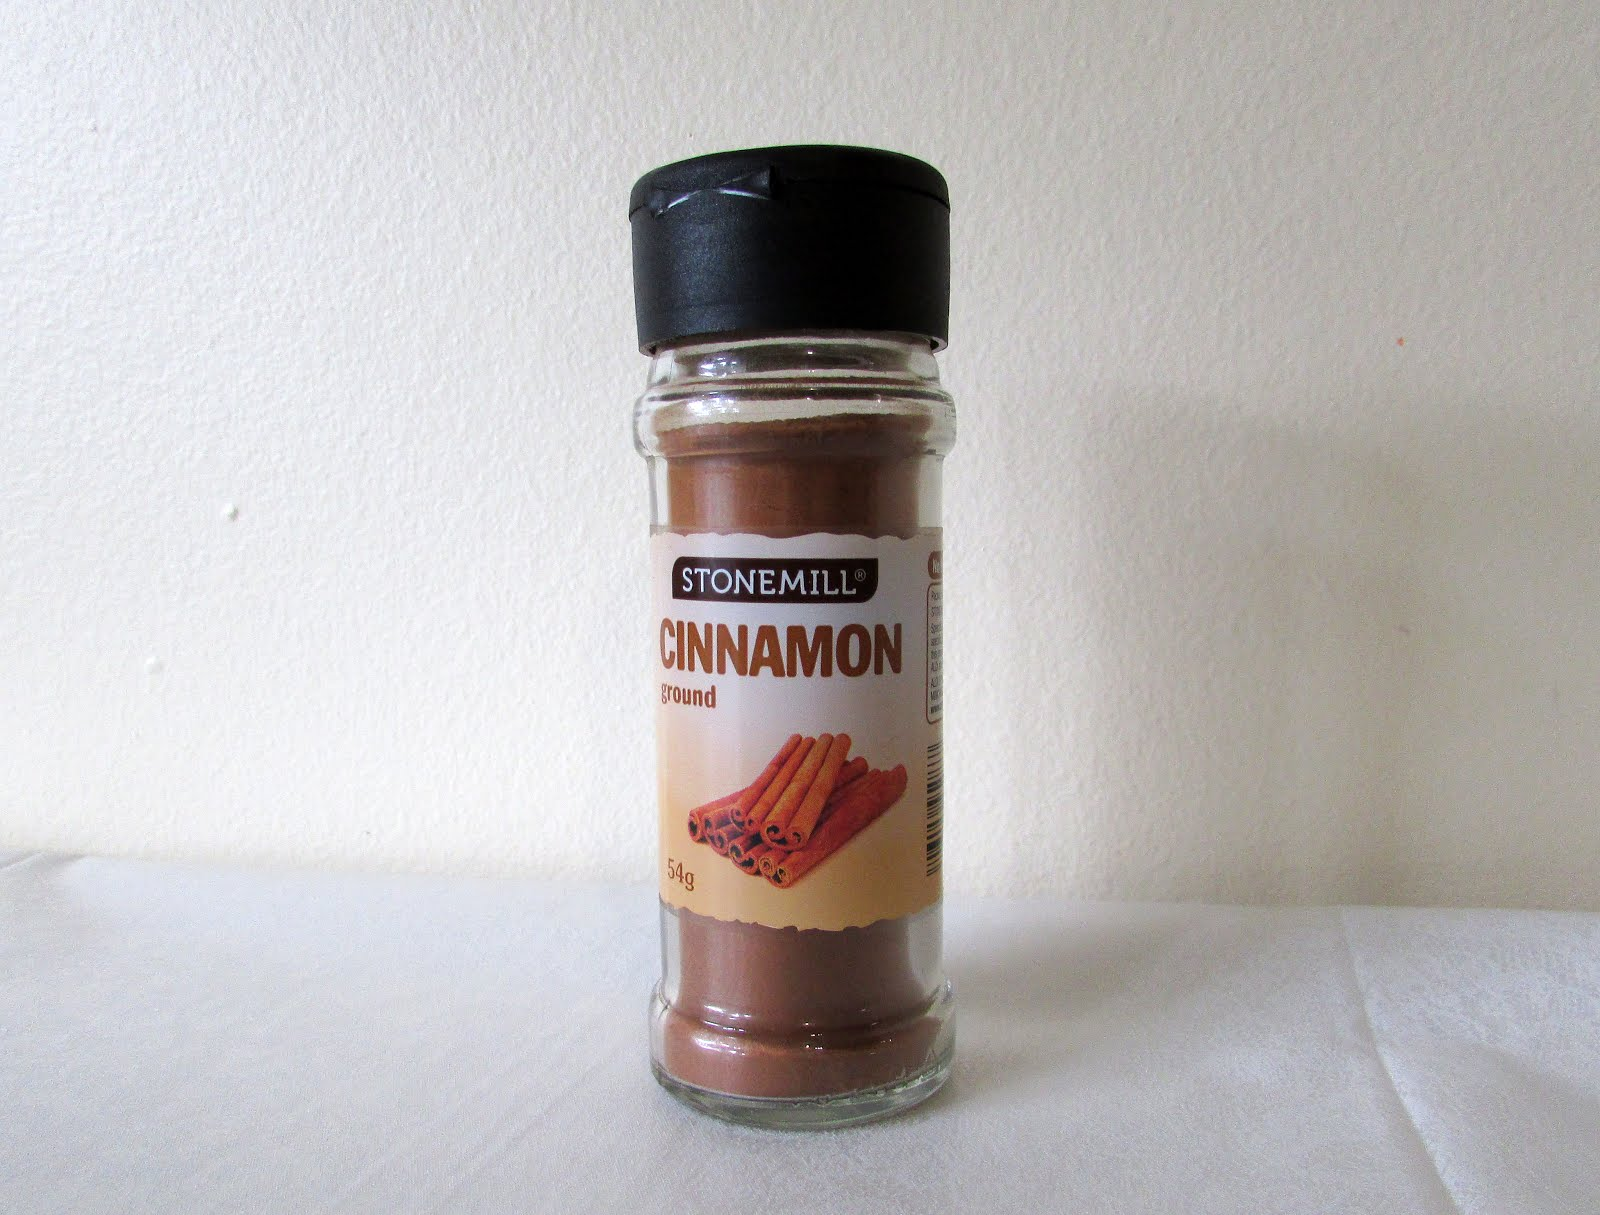 Hot Chocolate 2/13: Cinnamon Hot Chocolate